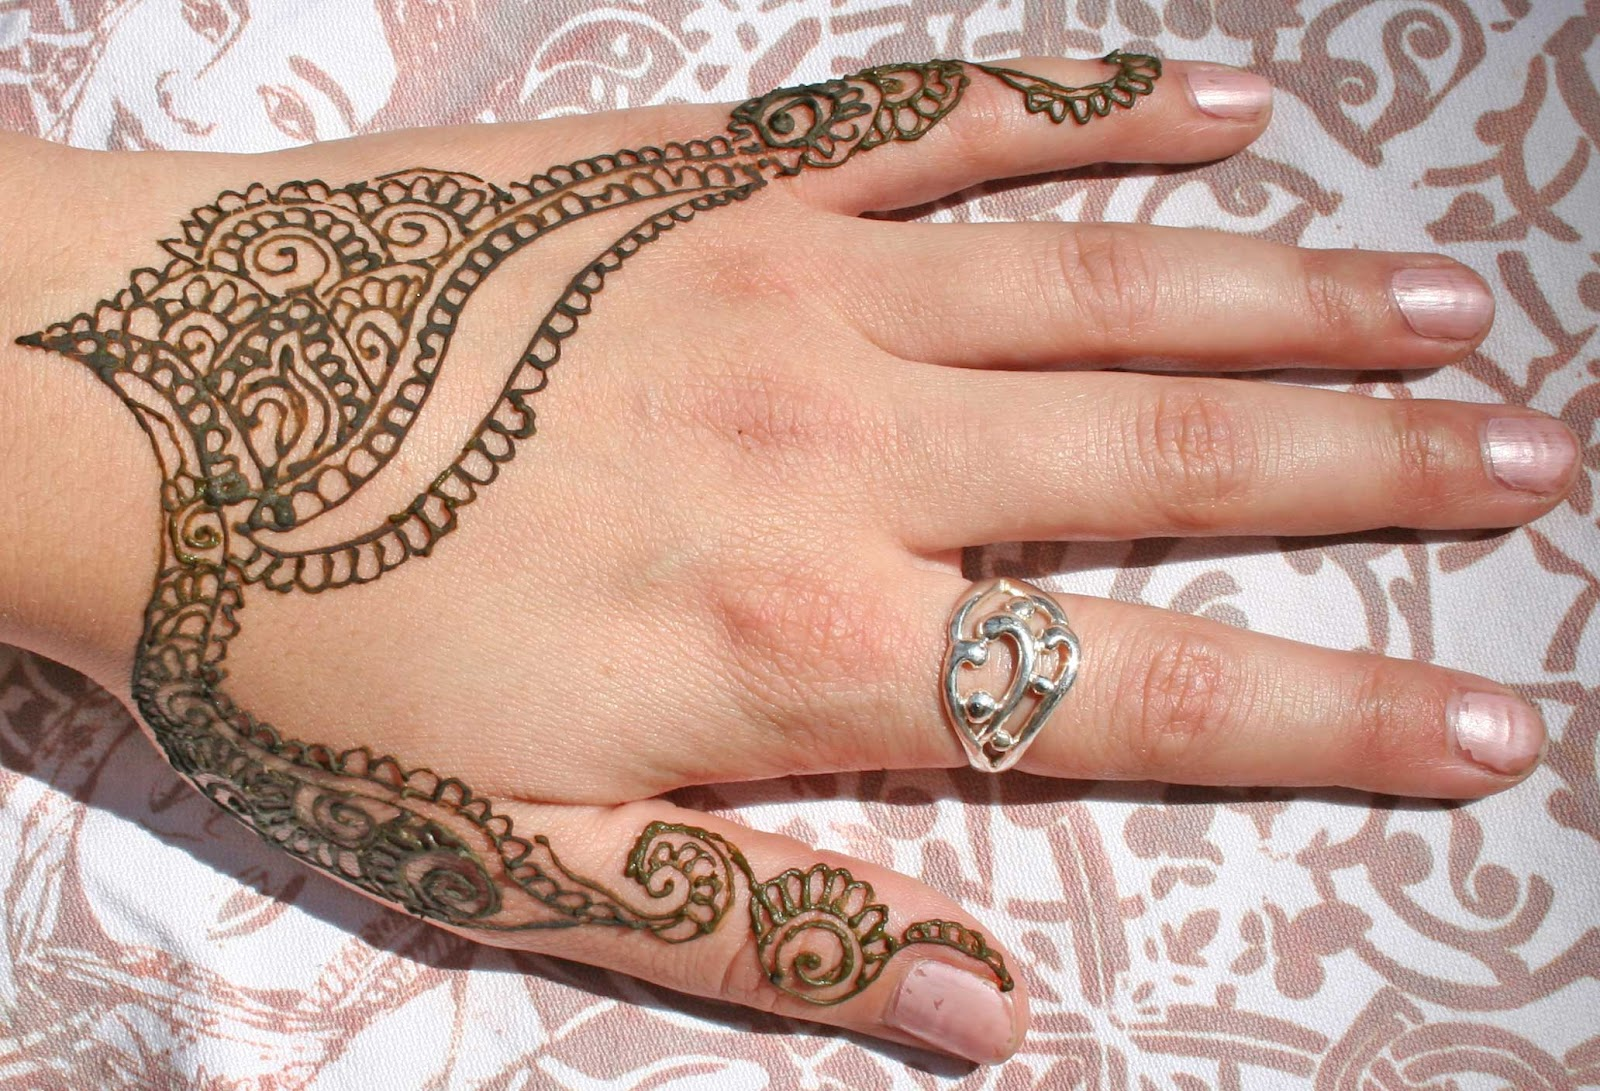 Henna Mehndi Tattoo Designs Idea For Wrist: Mehndi Designs 2012: Henna Tattoos